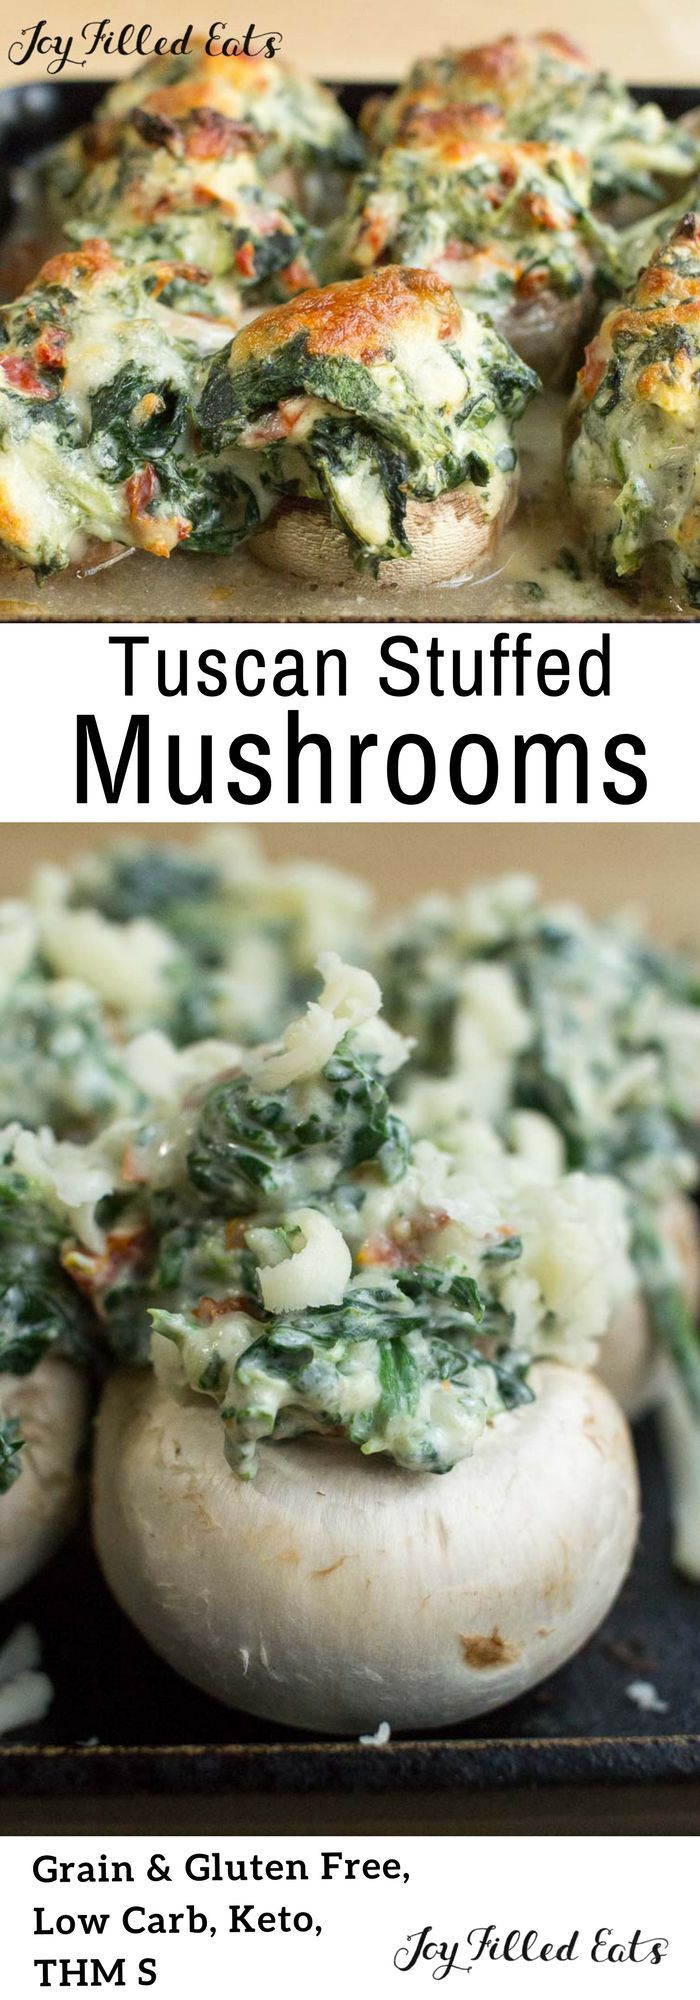 Tuscan Stuffed Mushrooms - Low Carb, Grain Gluten Free, THM S, Keto - These Tuscan Stuffed Mushrooms are a quick and easy side dish or appetizer with a ton of flavor. Sundried tomatoes, spinach, garlic, and cheese overflow tender button mushrooms.